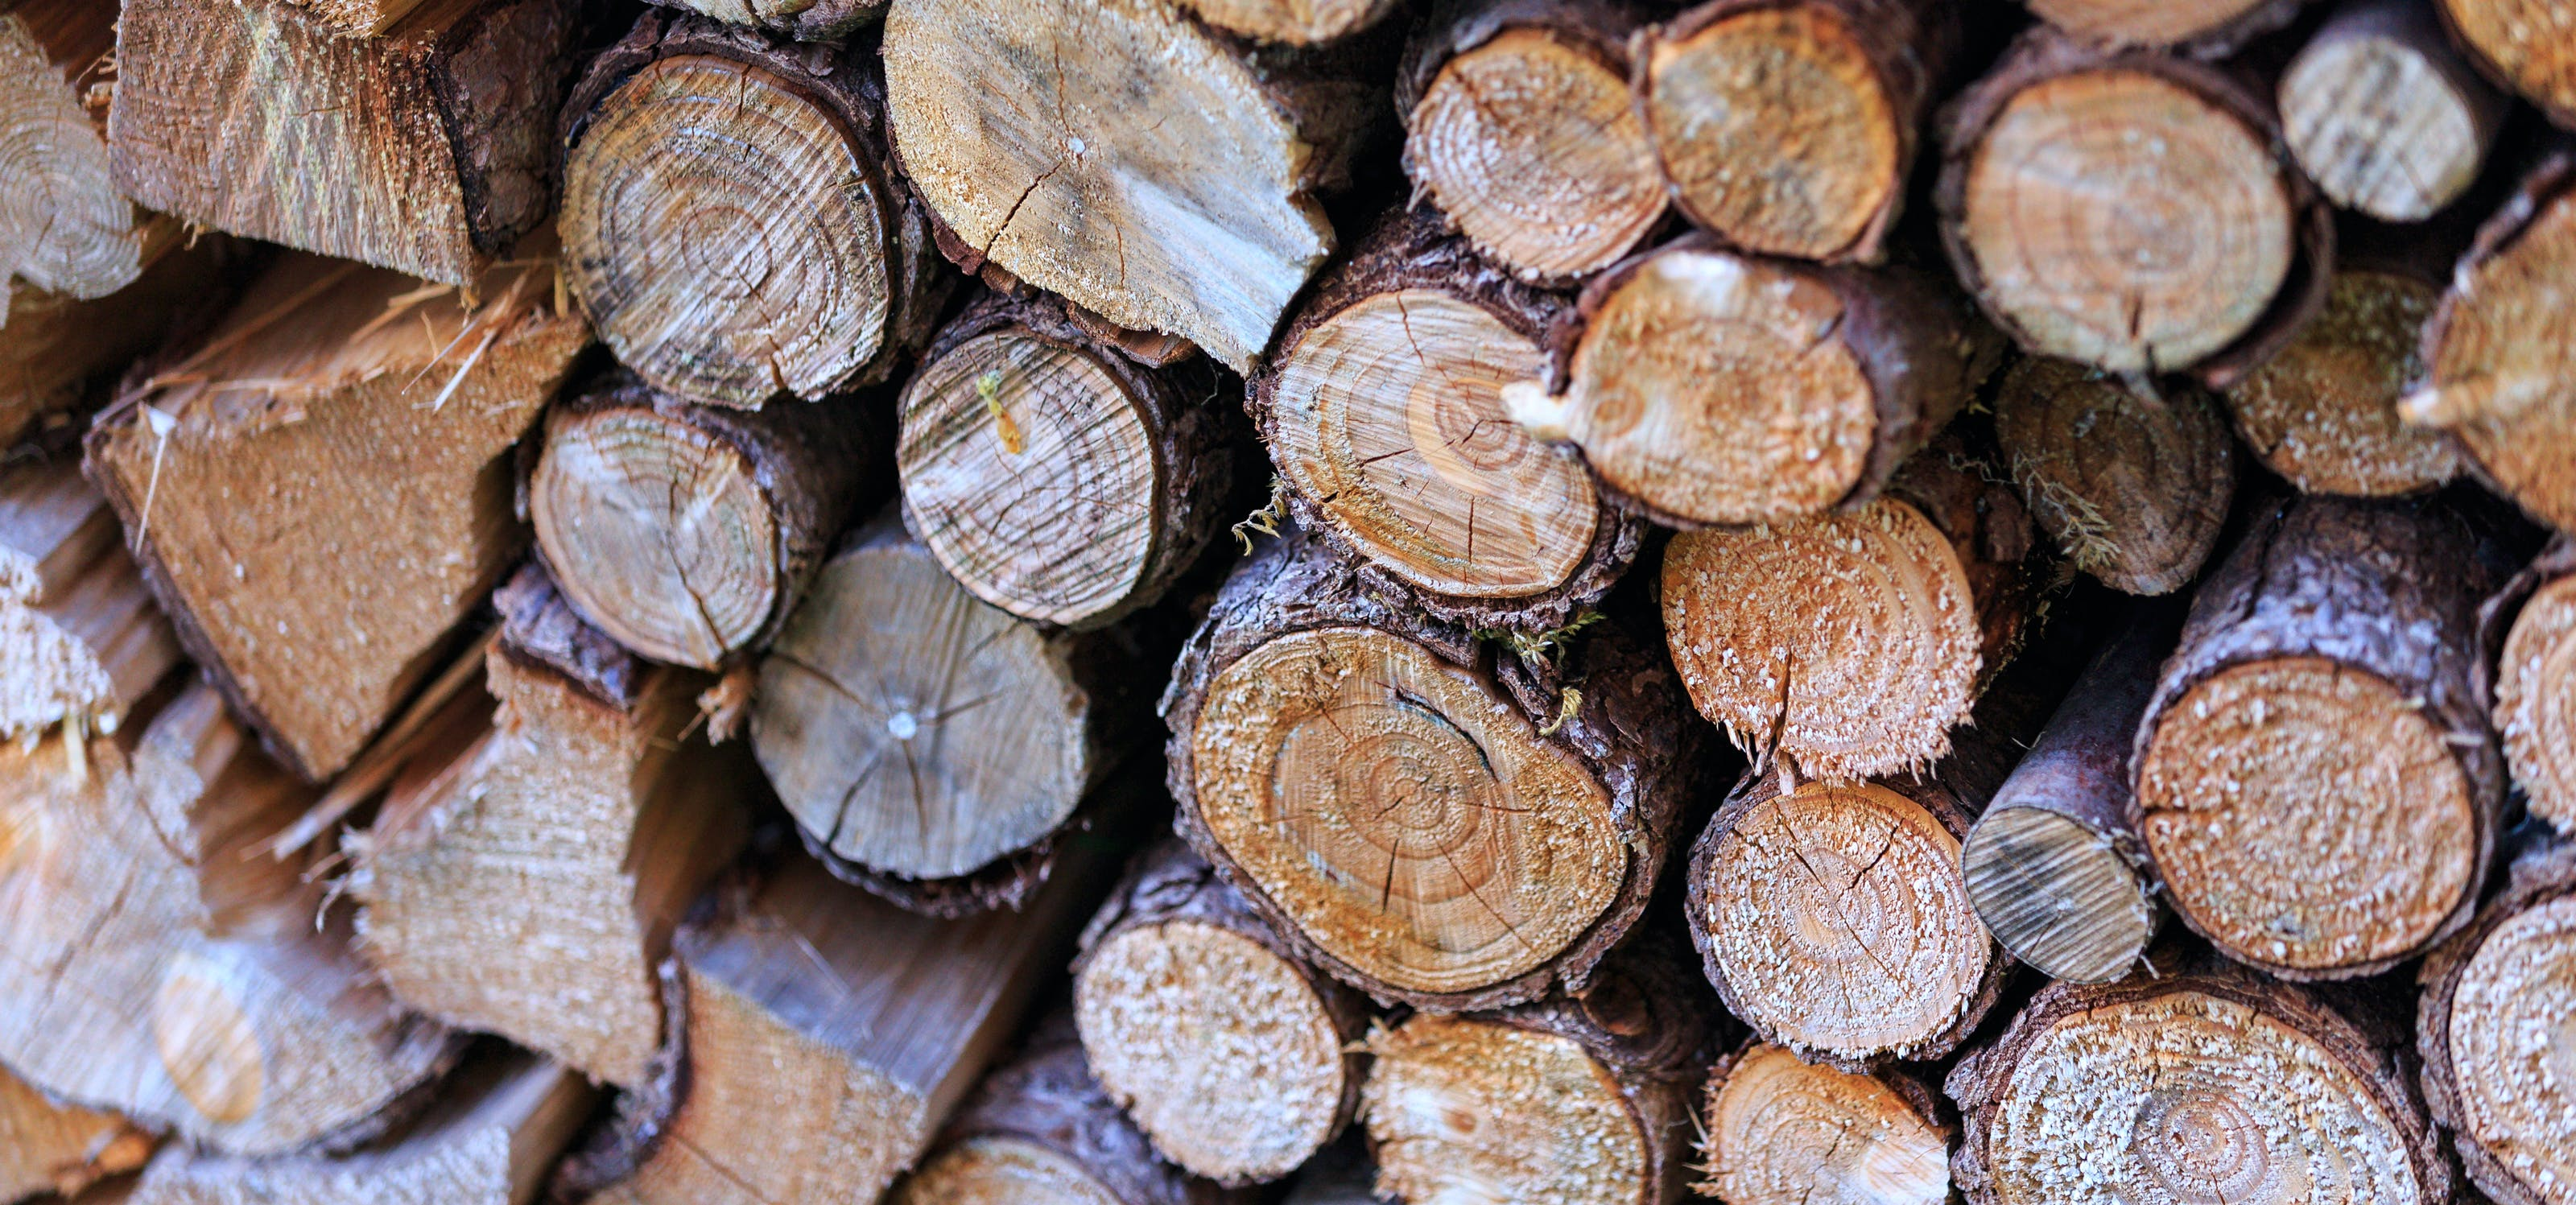 Free stock photo of wood, tree, logs, wooden logs